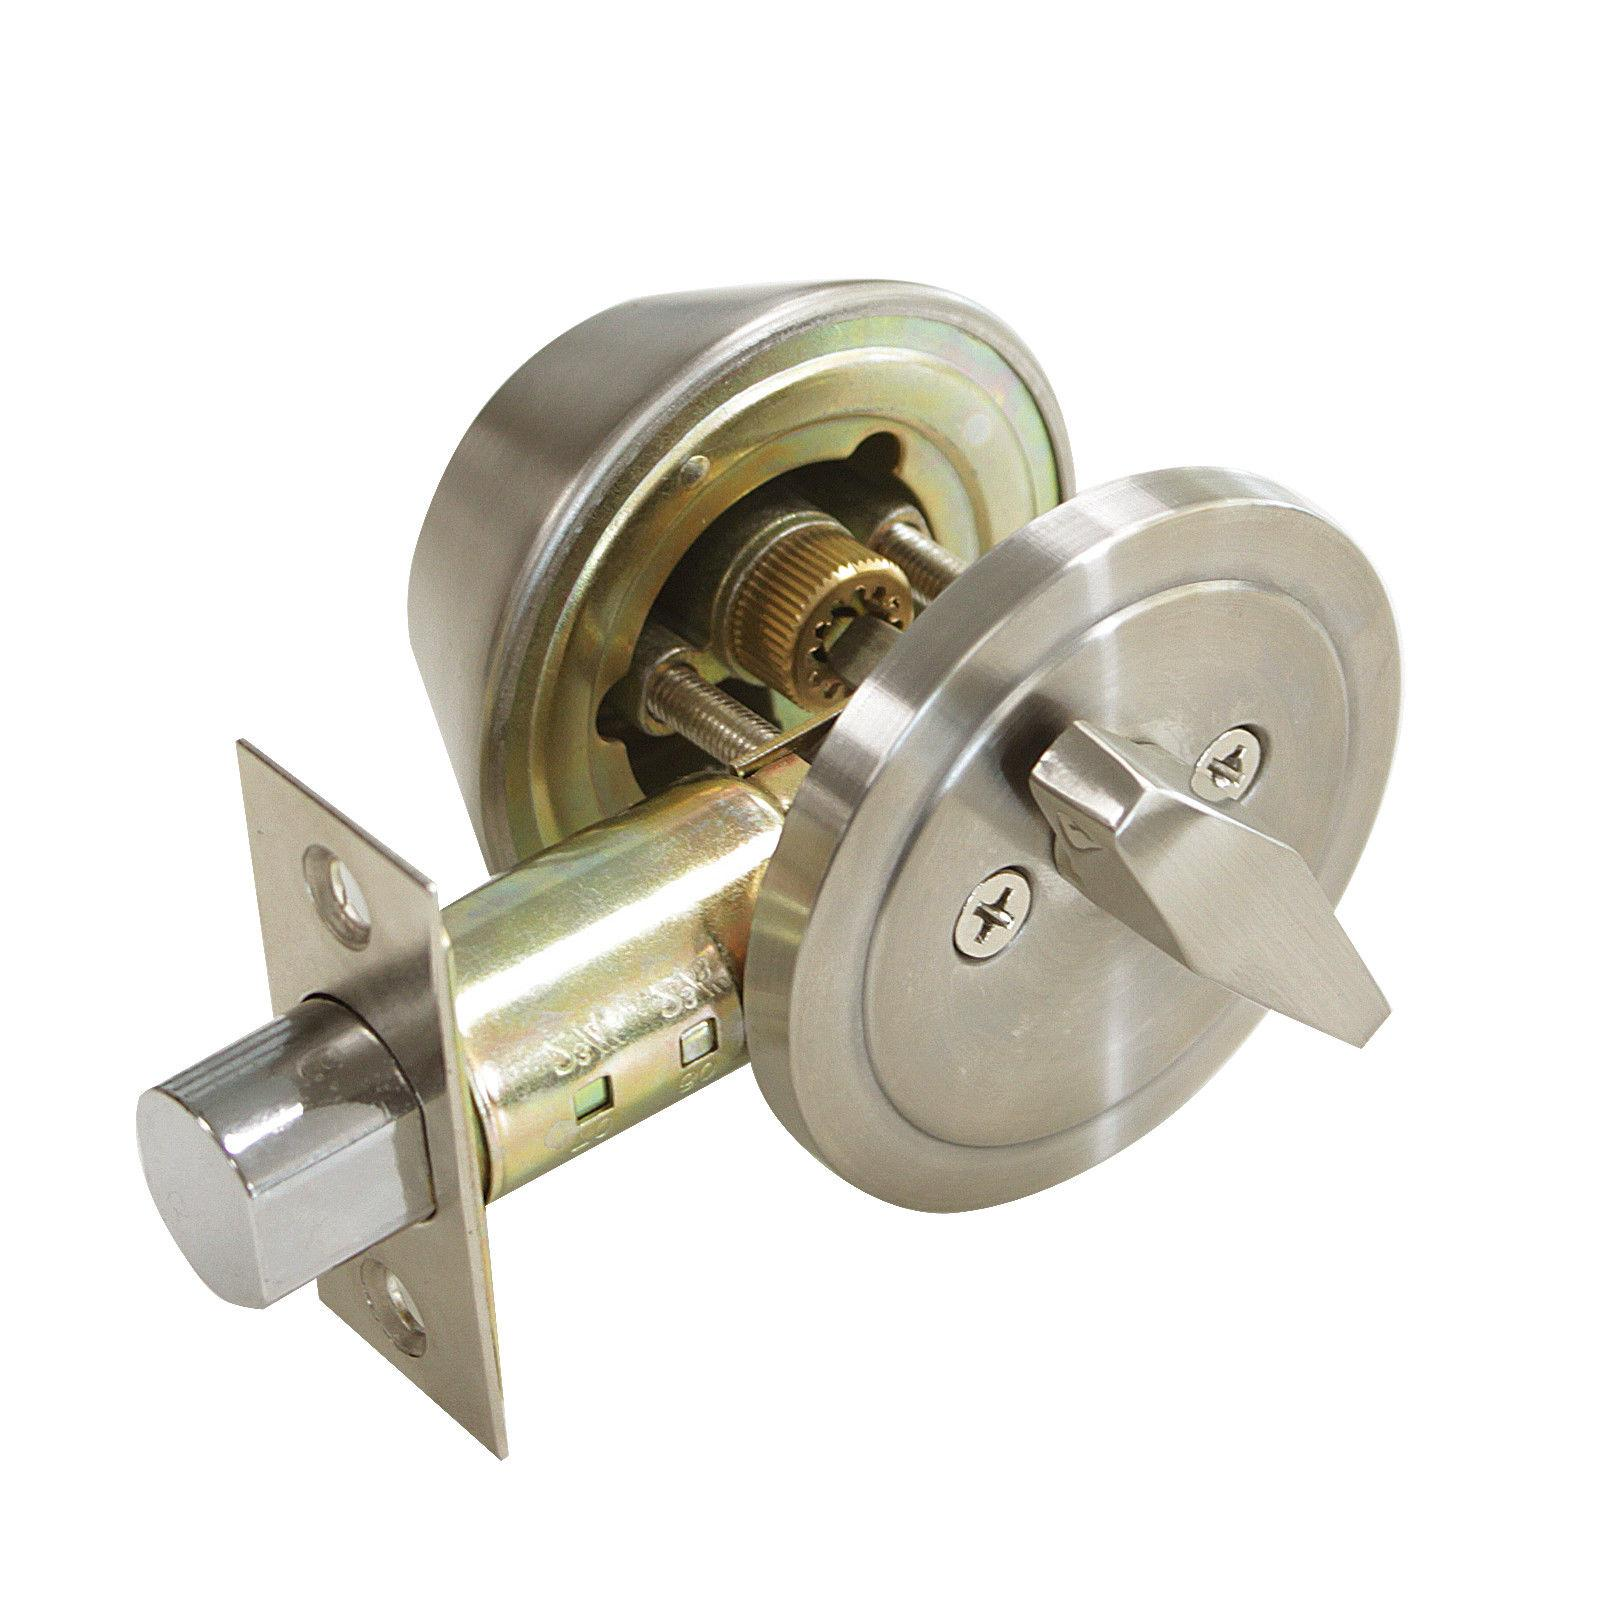 Entry Front Handle Single Knob Hardware